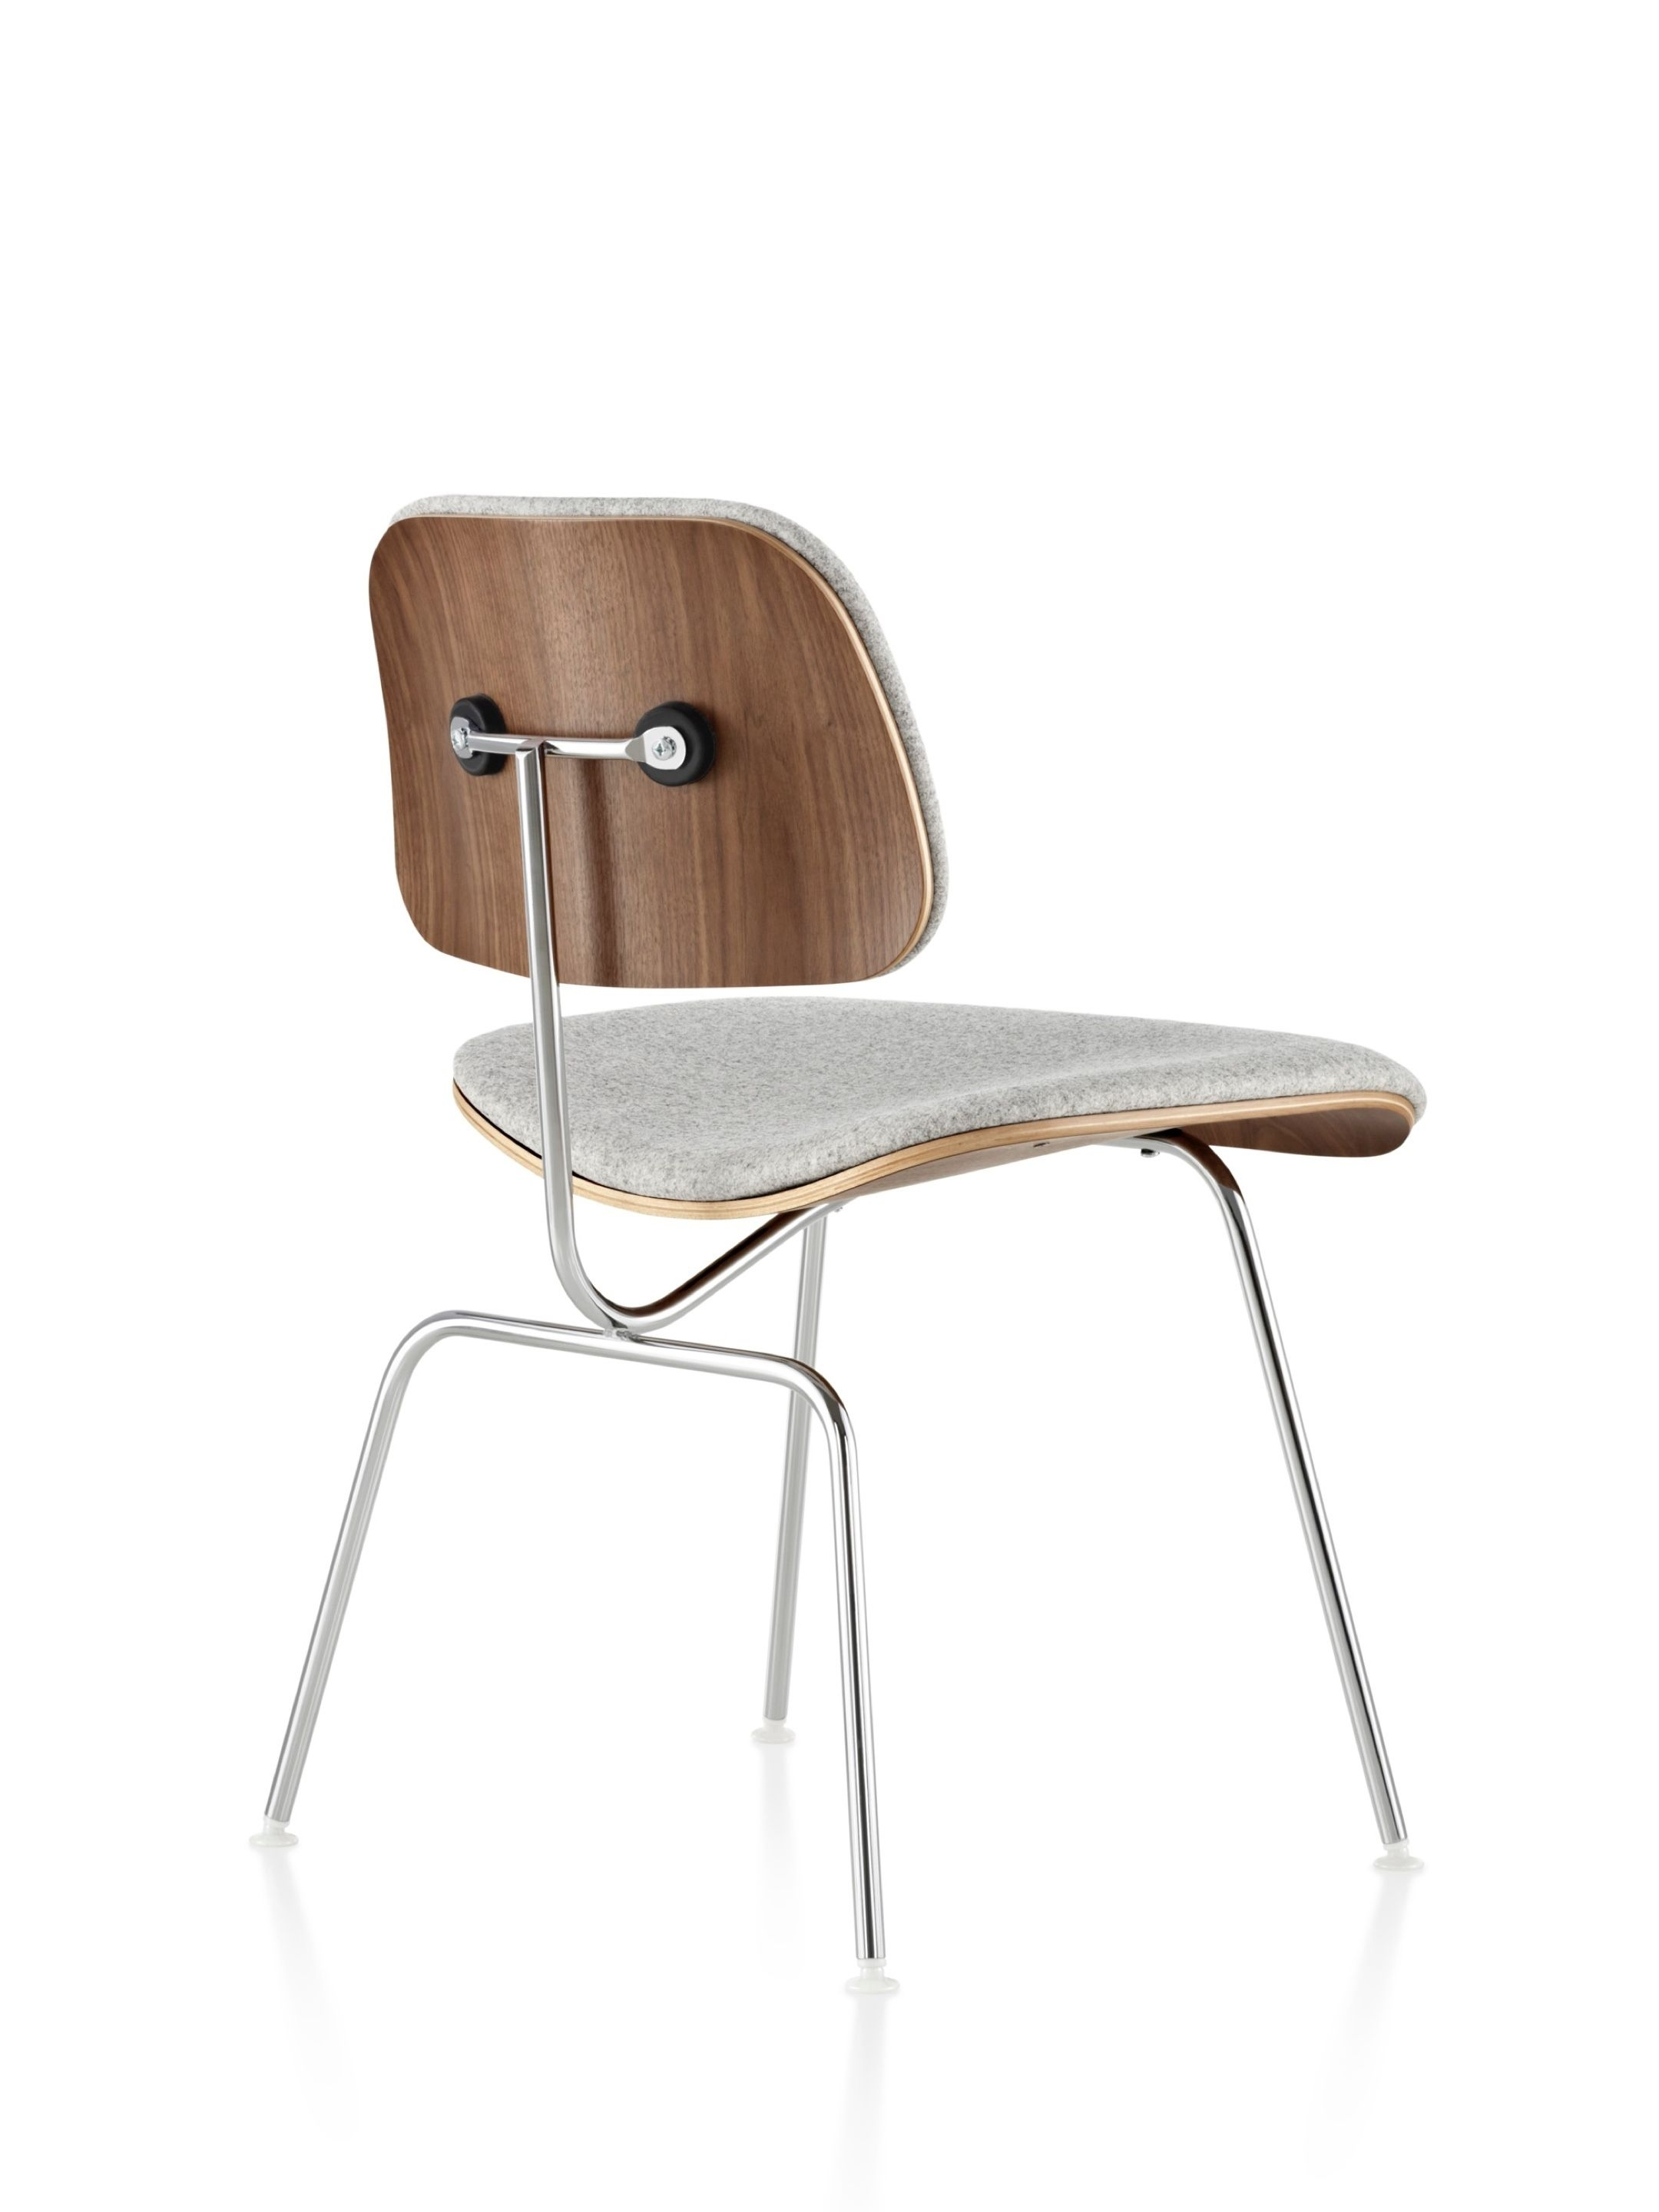 Clint Side Chairs Intended For Well Known Eames Molded Plywood Dining Chair With Metal Base Upholstered In (View 6 of 20)